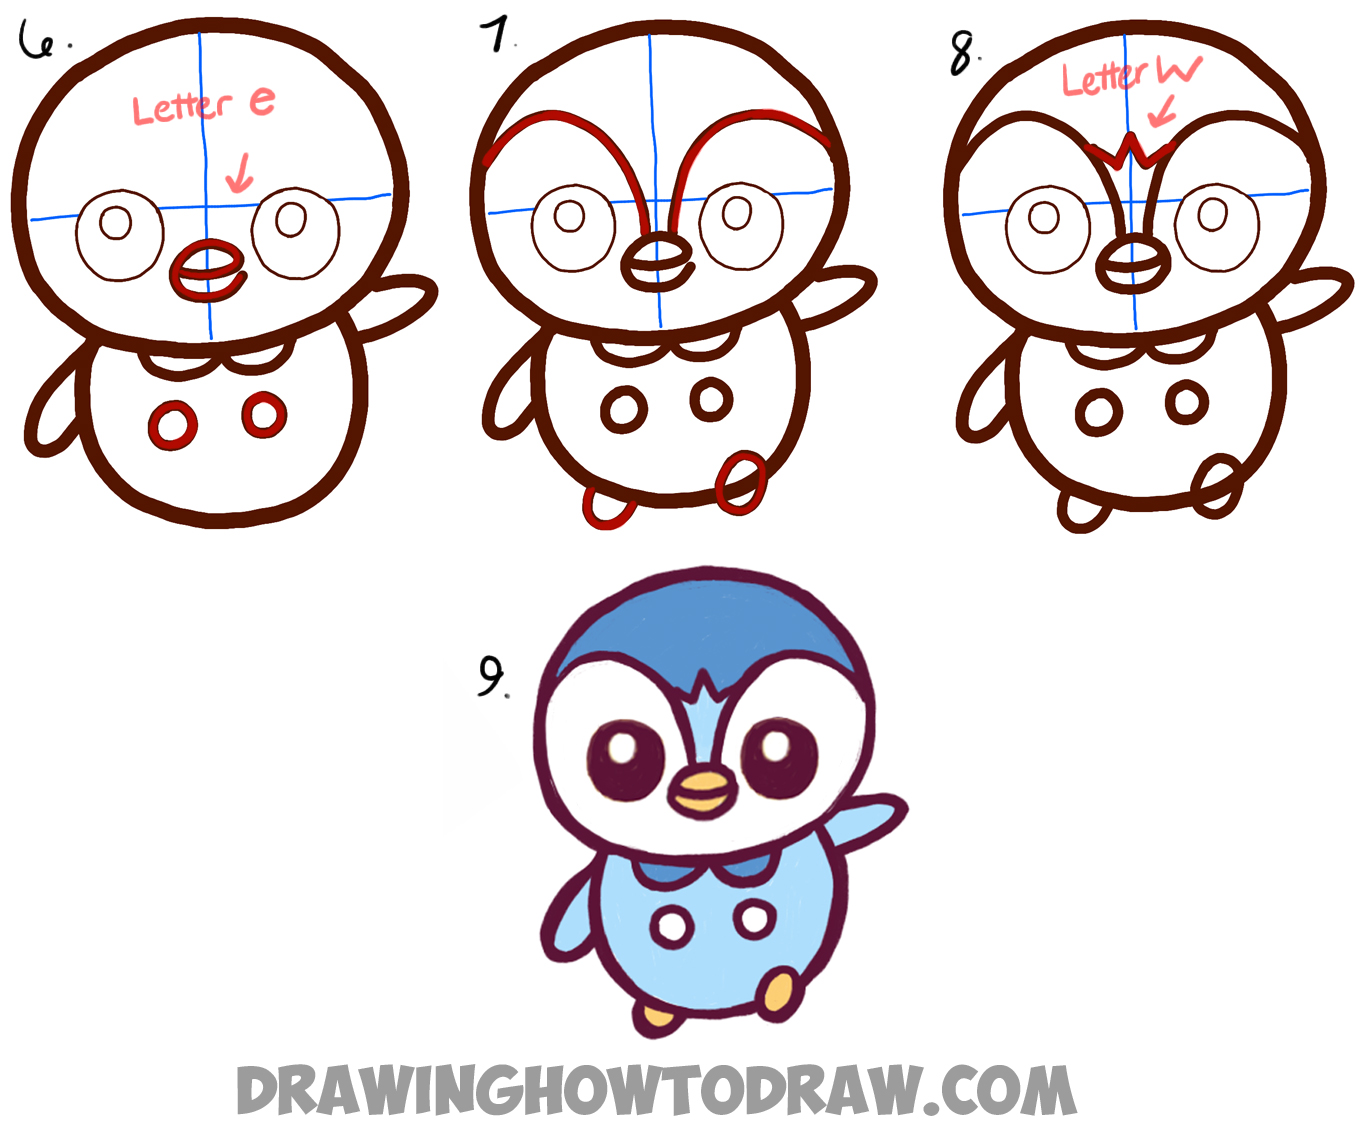 Learn How to Draw Baby Chibi Kawaii Piplup from Pokemon and Pokemon Go Simple Steps Drawing Lesson